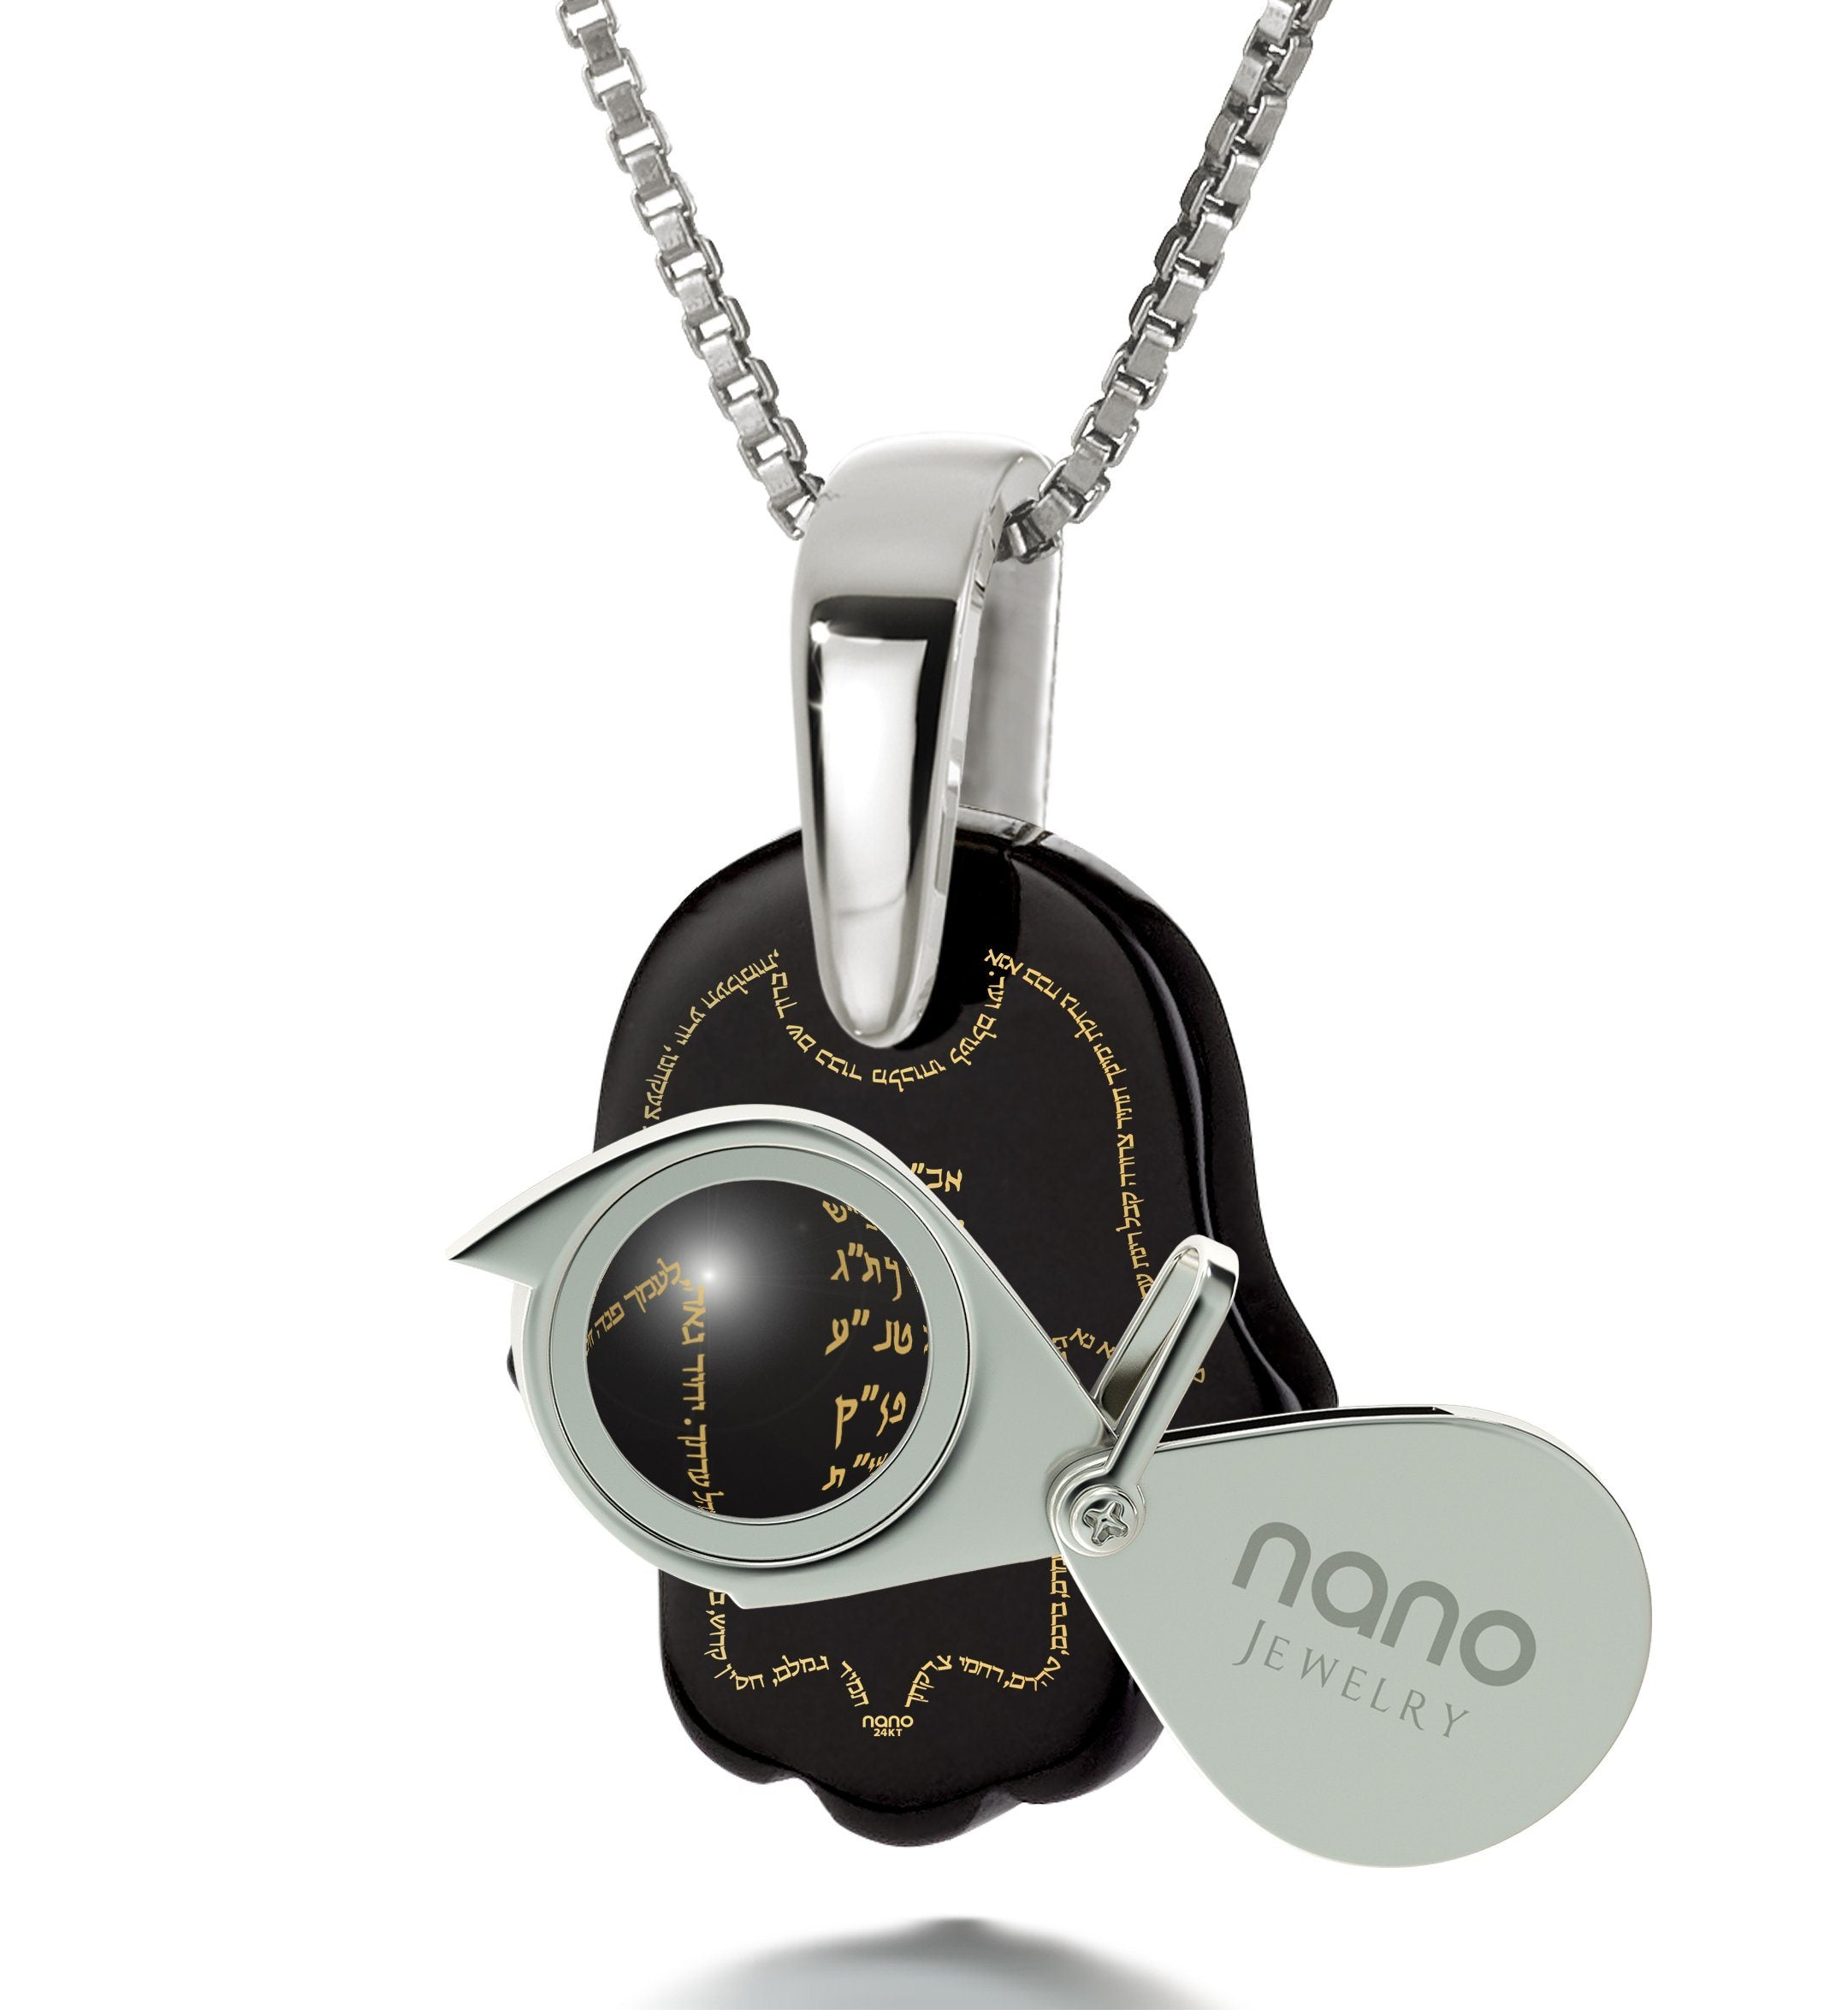 """Ana Bekoach"": Jewish Jewelry, Christmas Presents for Her, Black Onyx Necklace, Nano Jewelry"